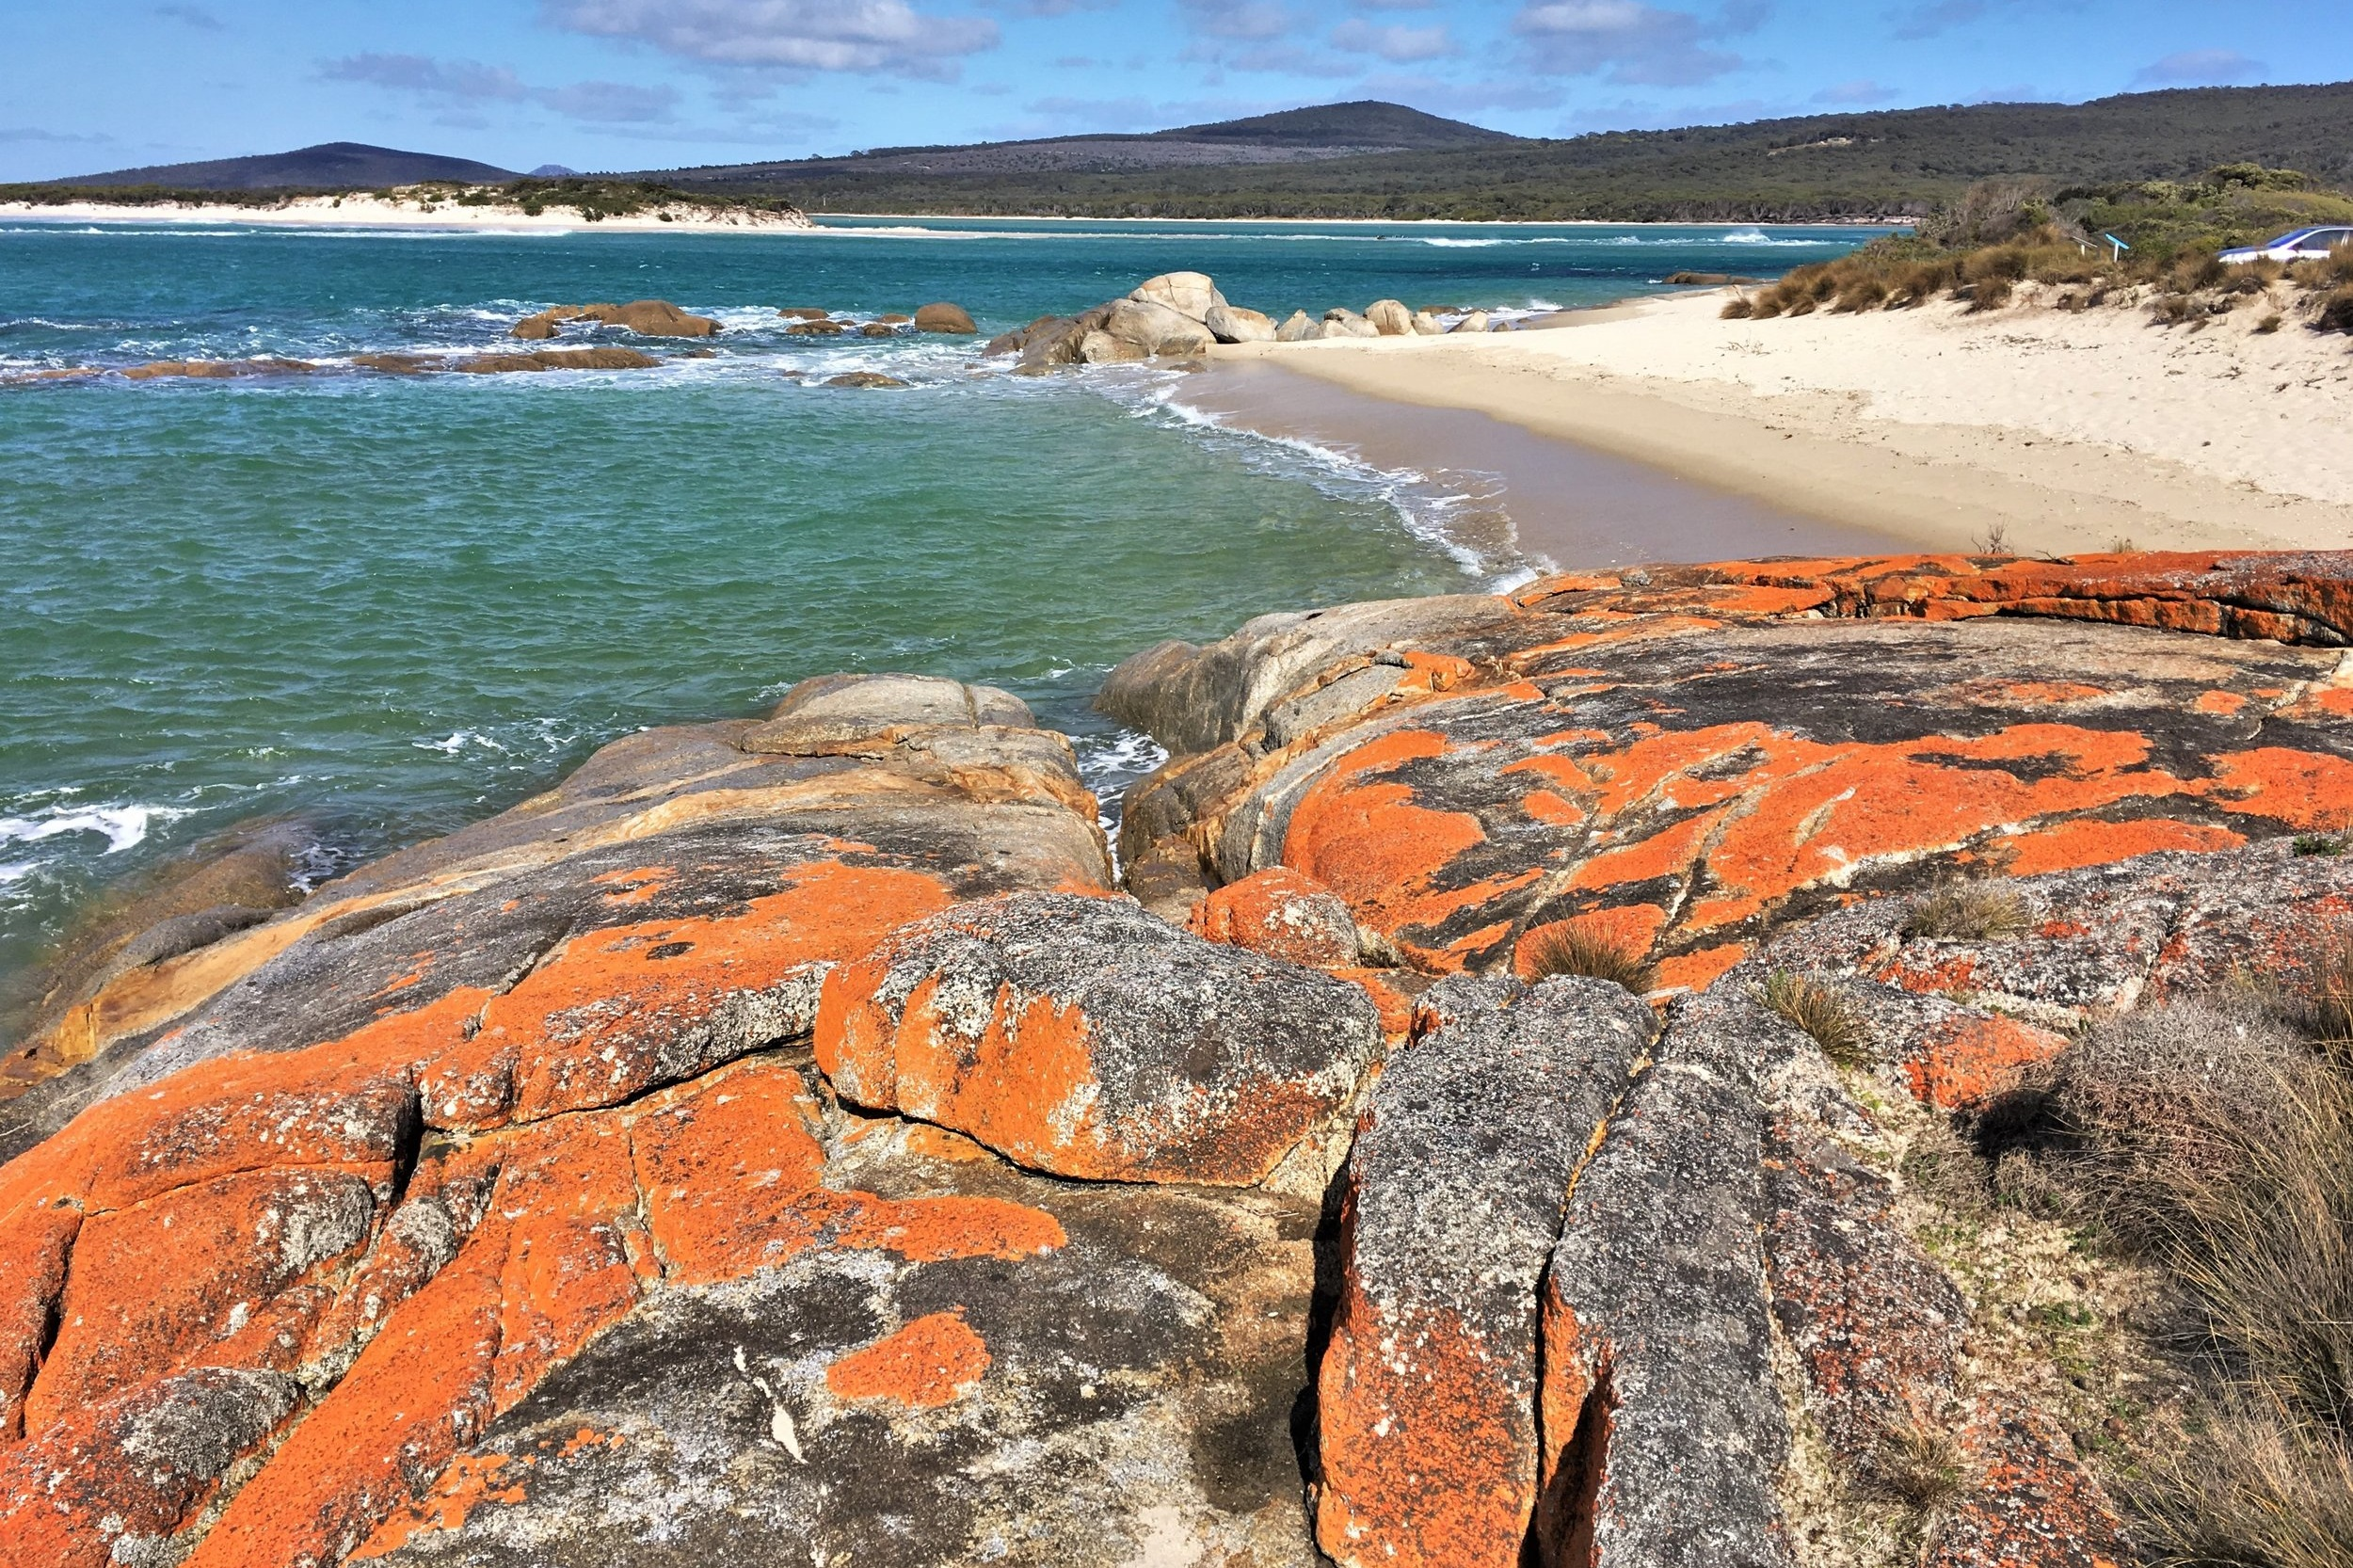 Beach+and+red+boulders+%28colored+by+algae%29+along+the+coast+on+Flinders+Island%2C+Tasmania